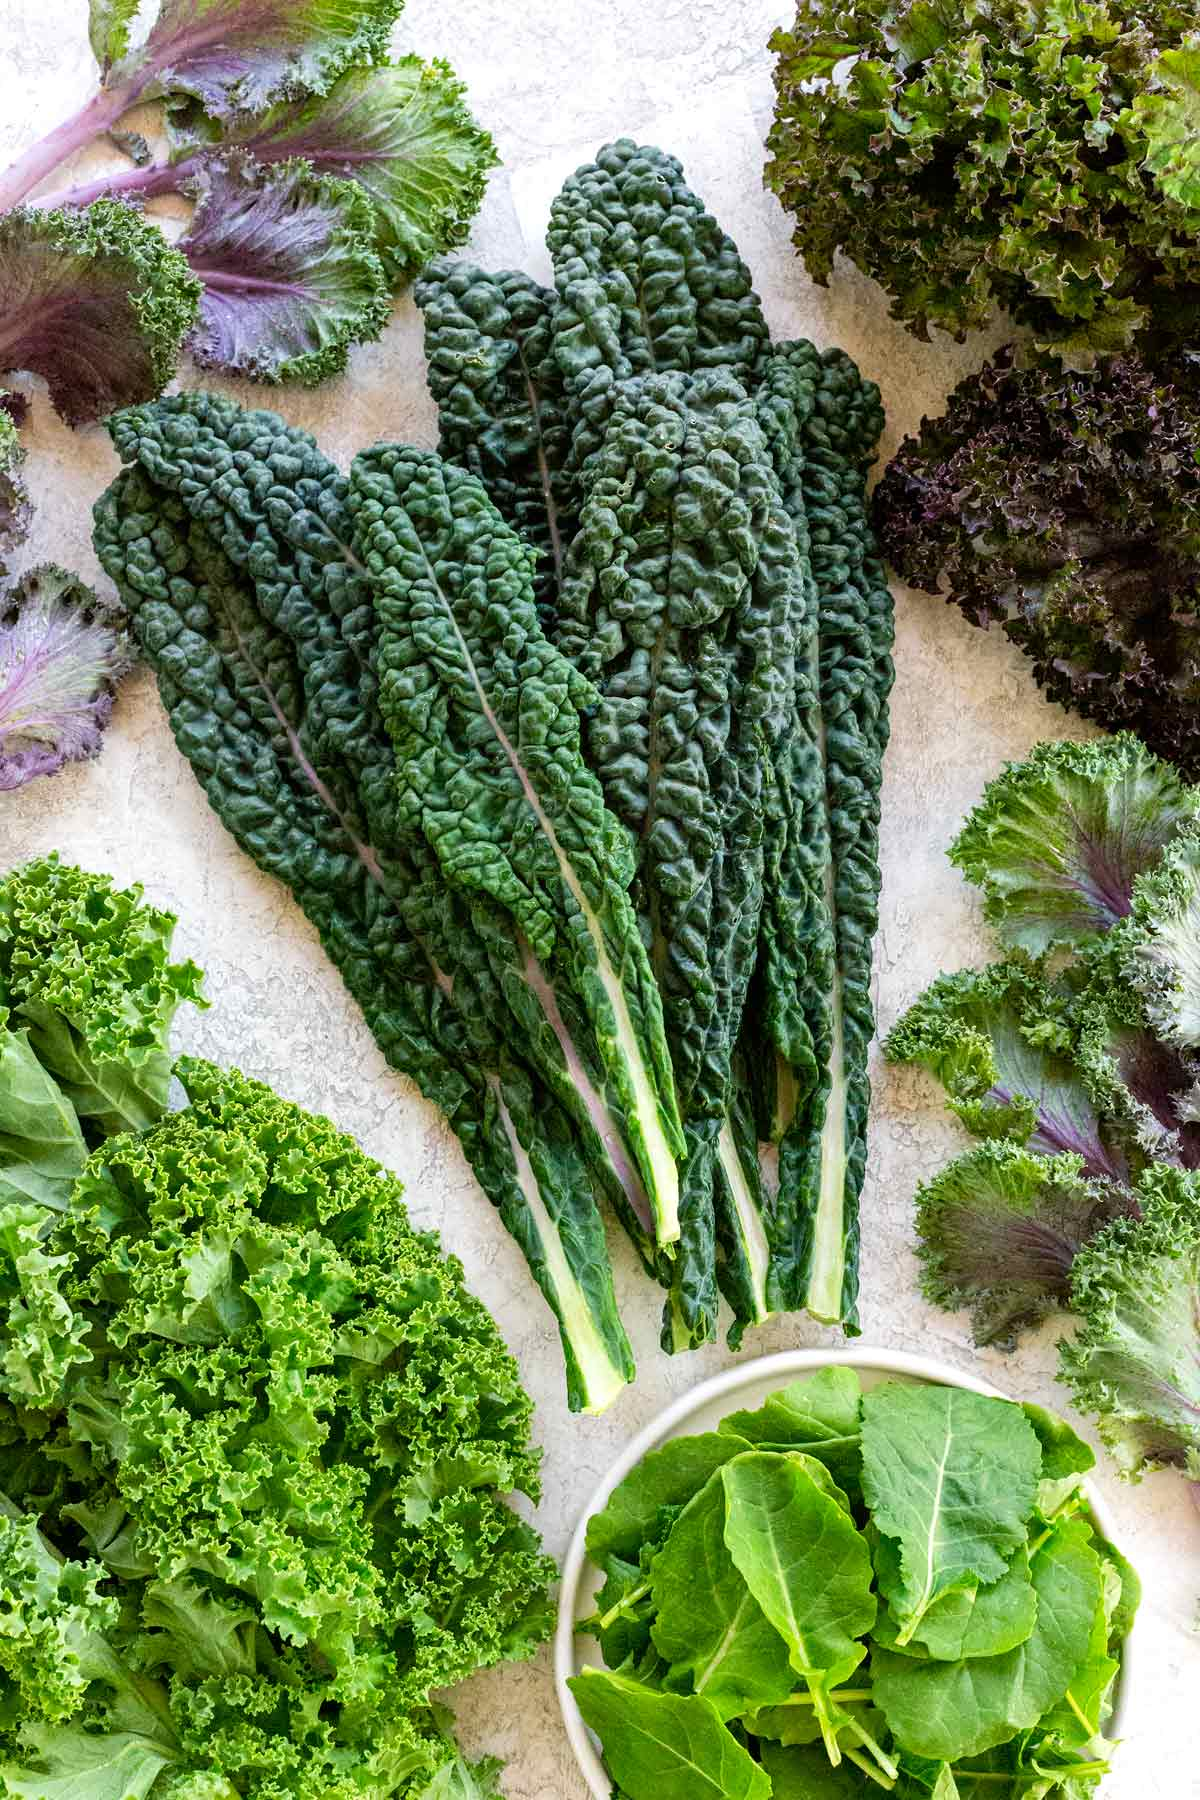 Kale is a superfood, so don't let this vegetable slip you by. Kale has tons of health benefits and it can add interesting flavor to your meals. #kale #healthy #vegetables #salad